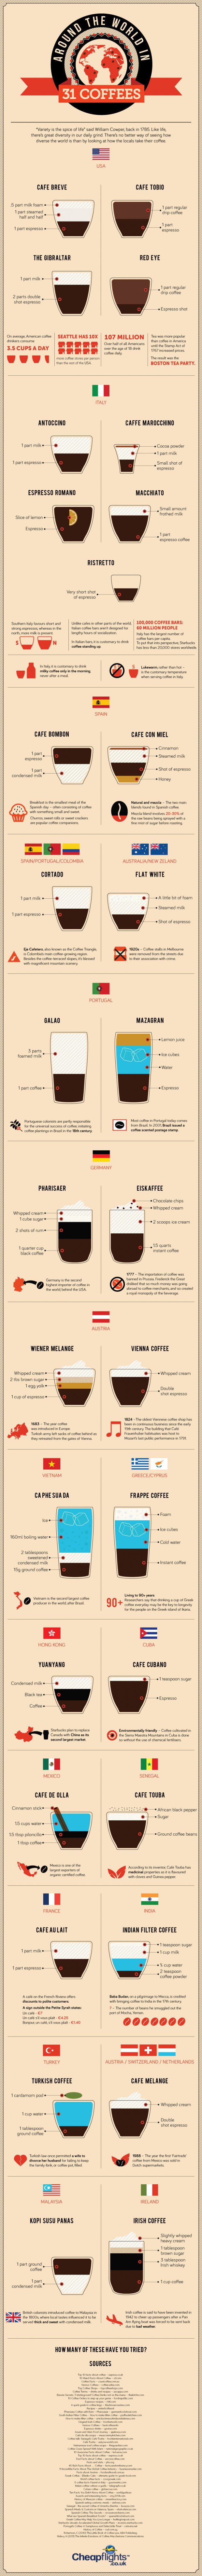 World's Best History of Coffee